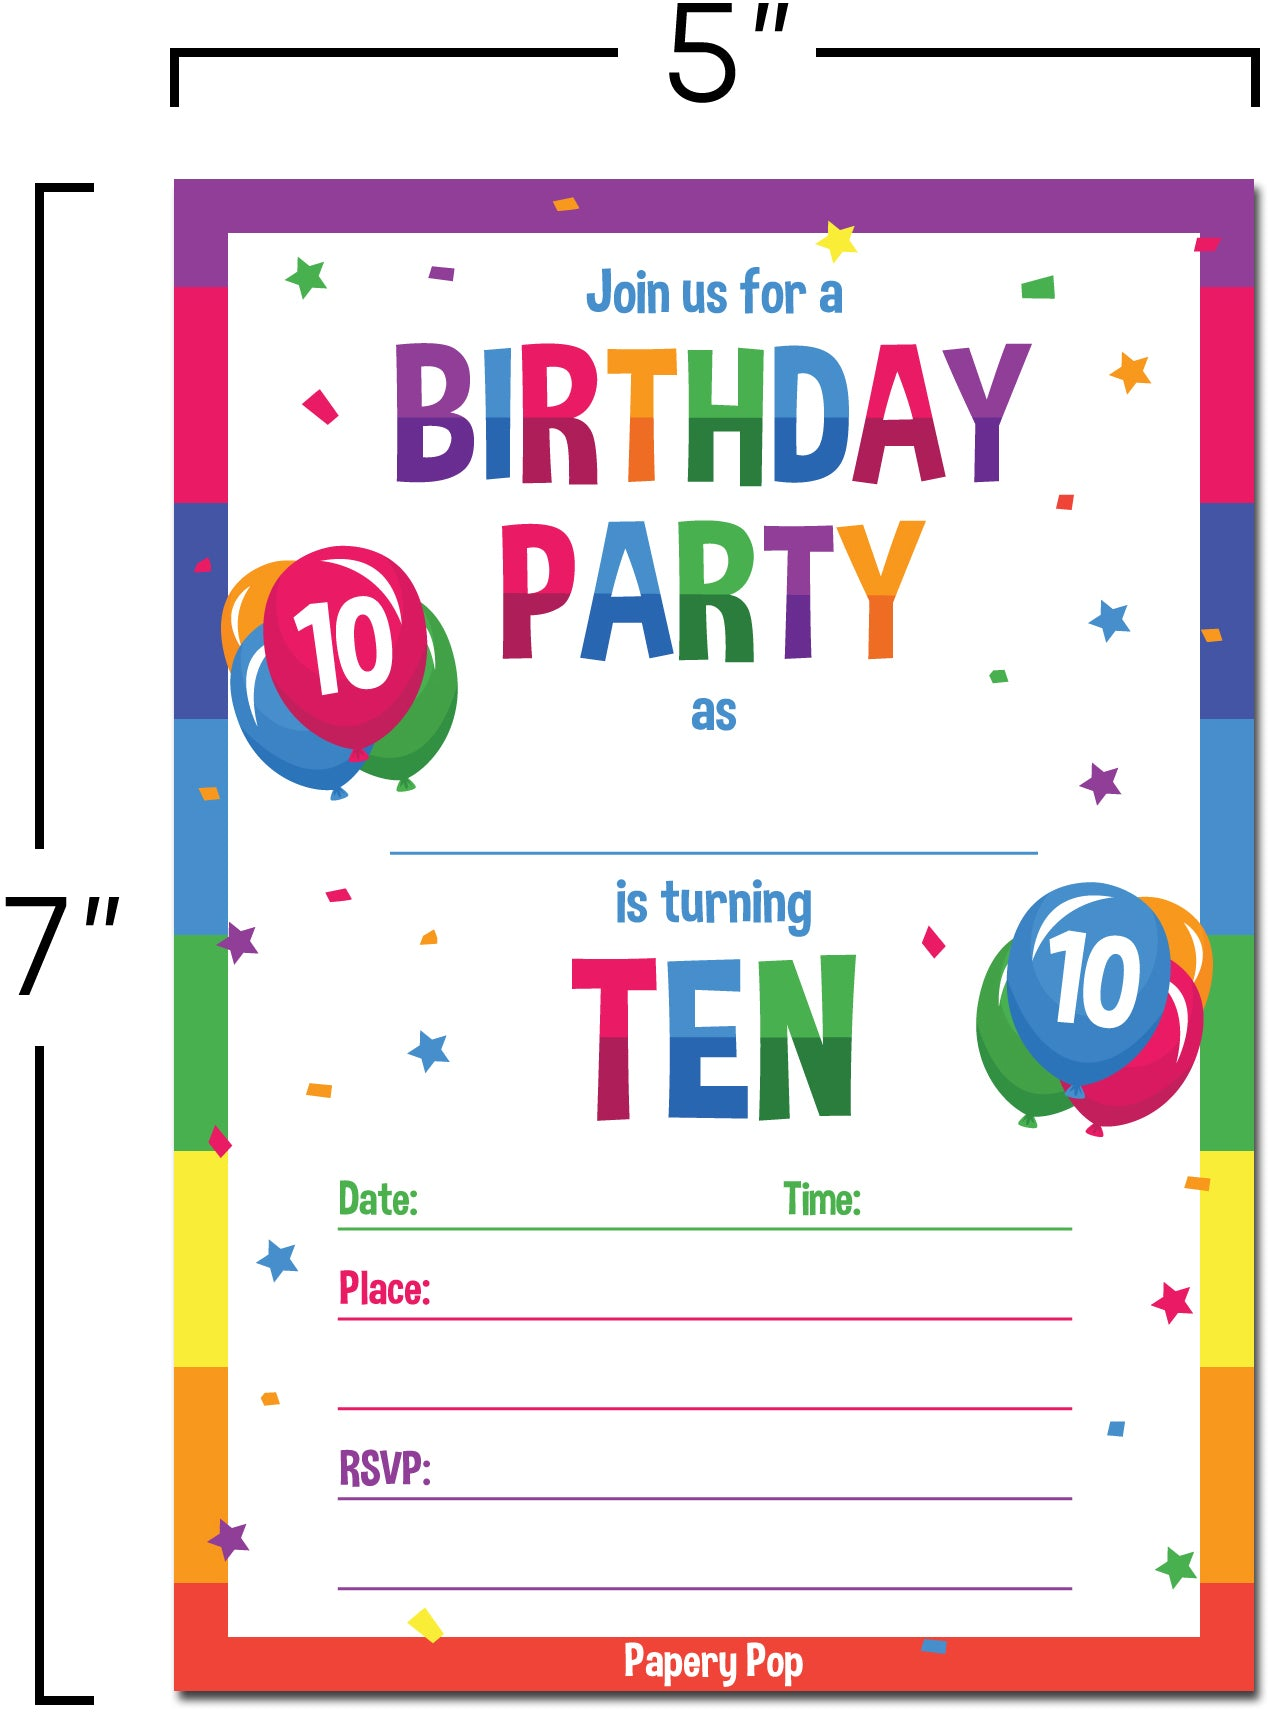 10 Year Old Birthday Party Invitations With Envelopes 15 Count